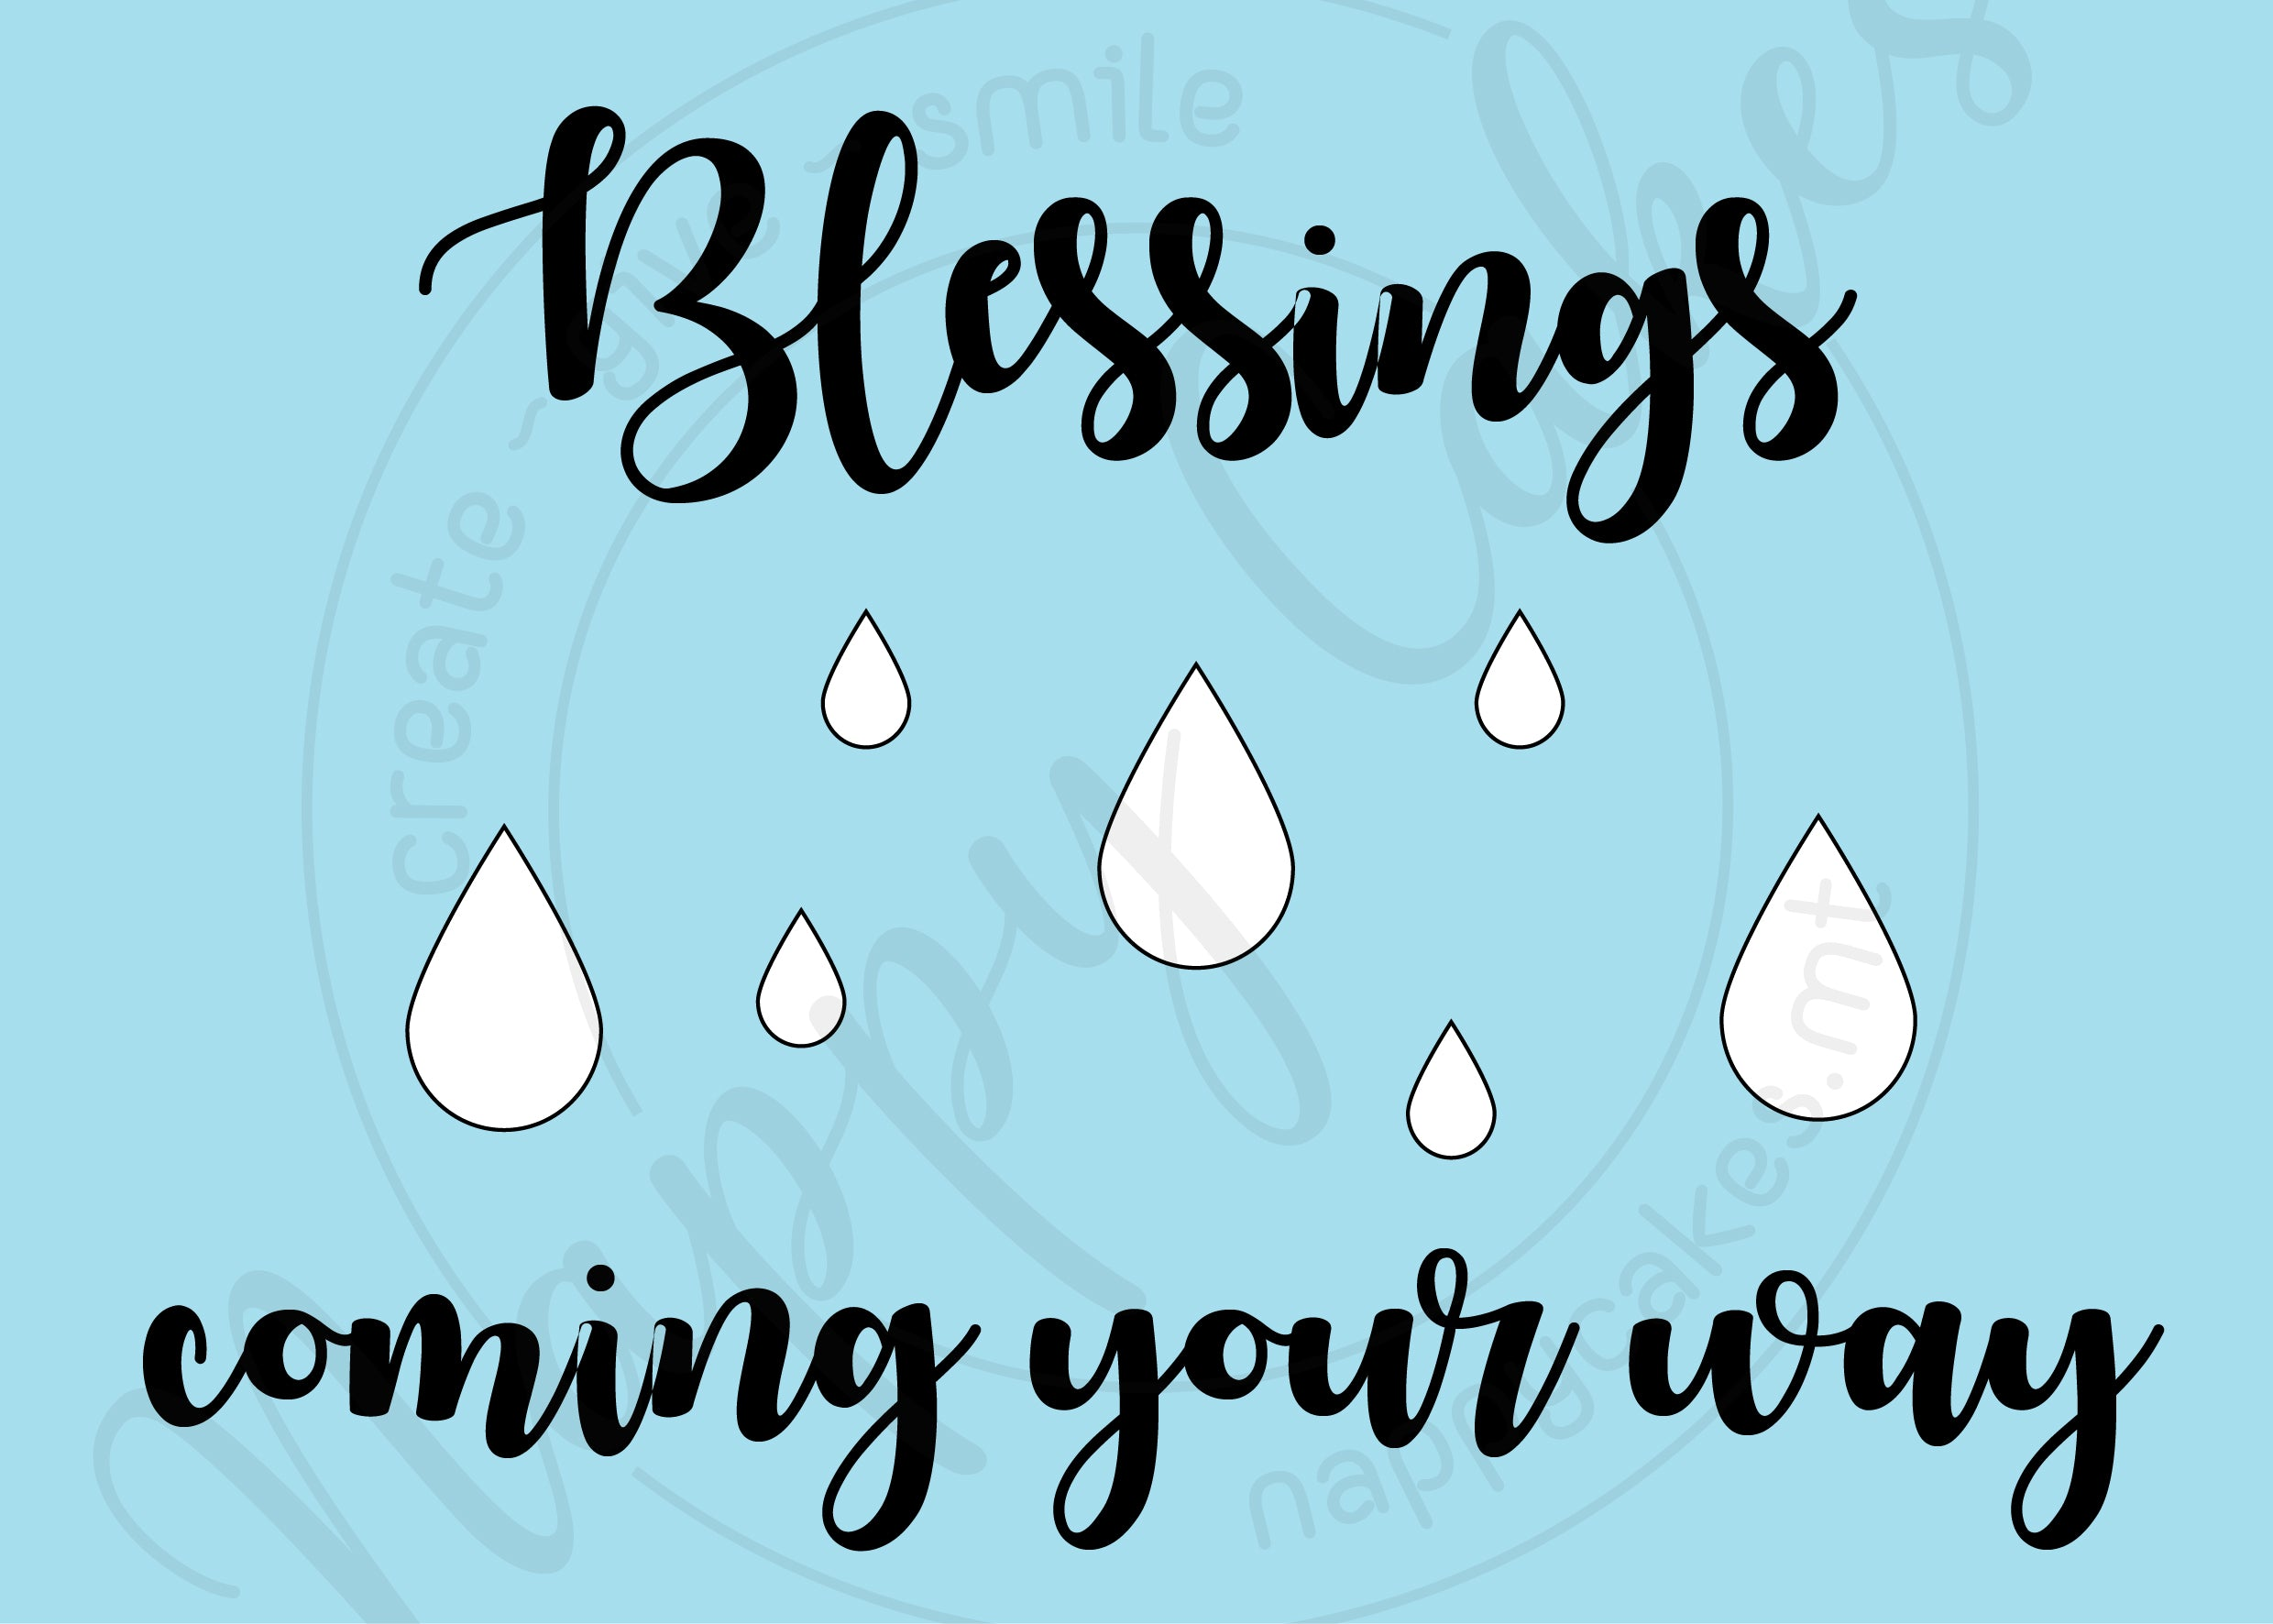 Blessings Coming Your Way Greeting Card